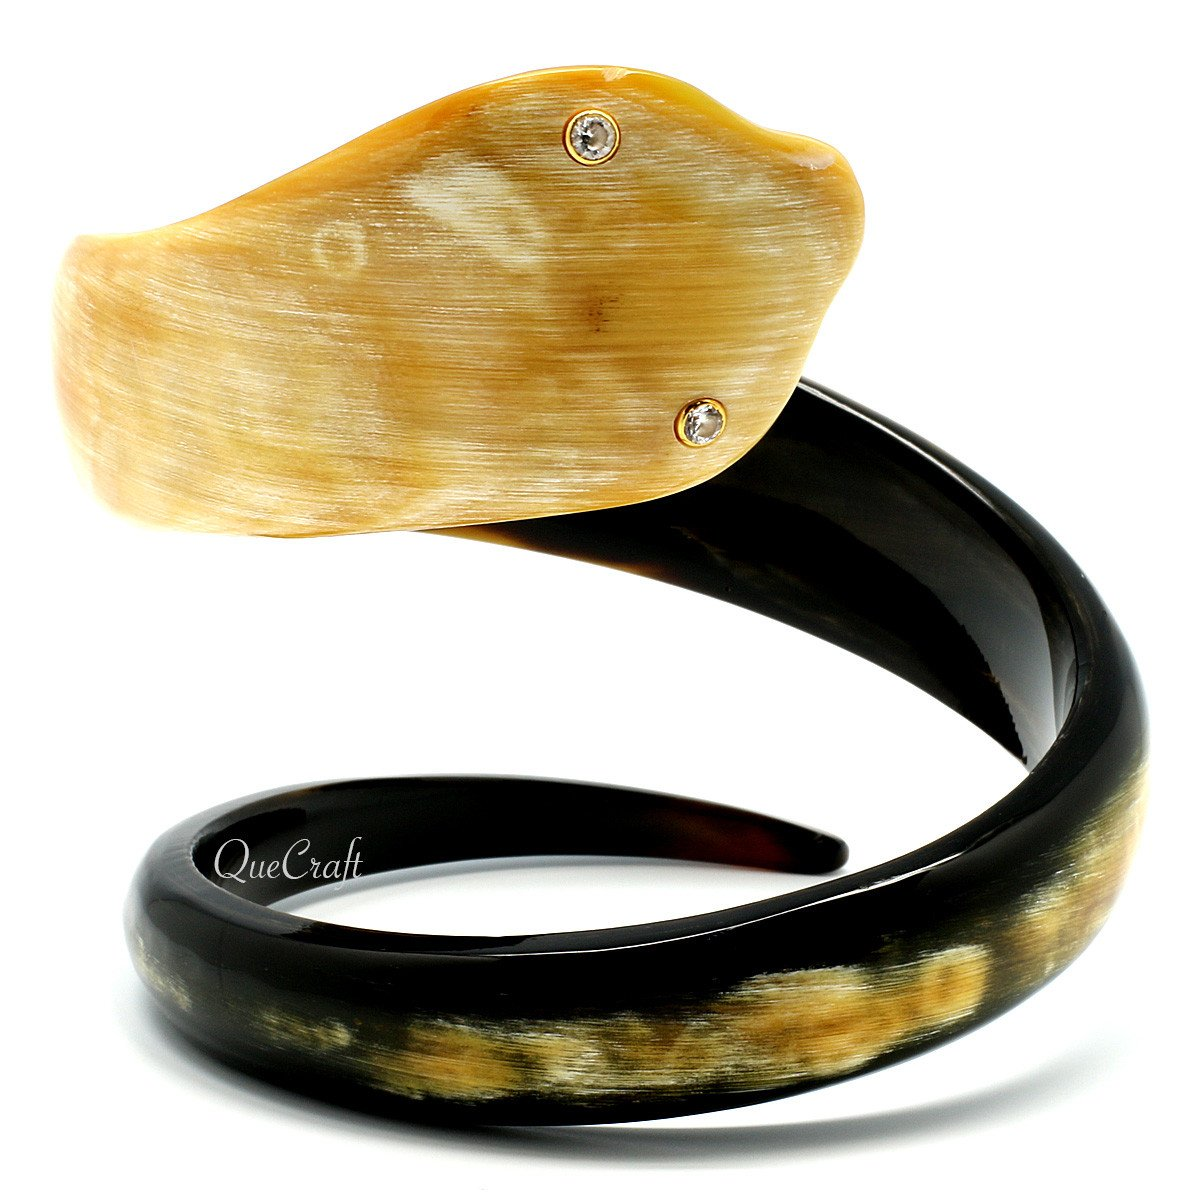 Horn & CZ Bangle Bracelet #10480 - HORN.JEWELRY by QueCraft